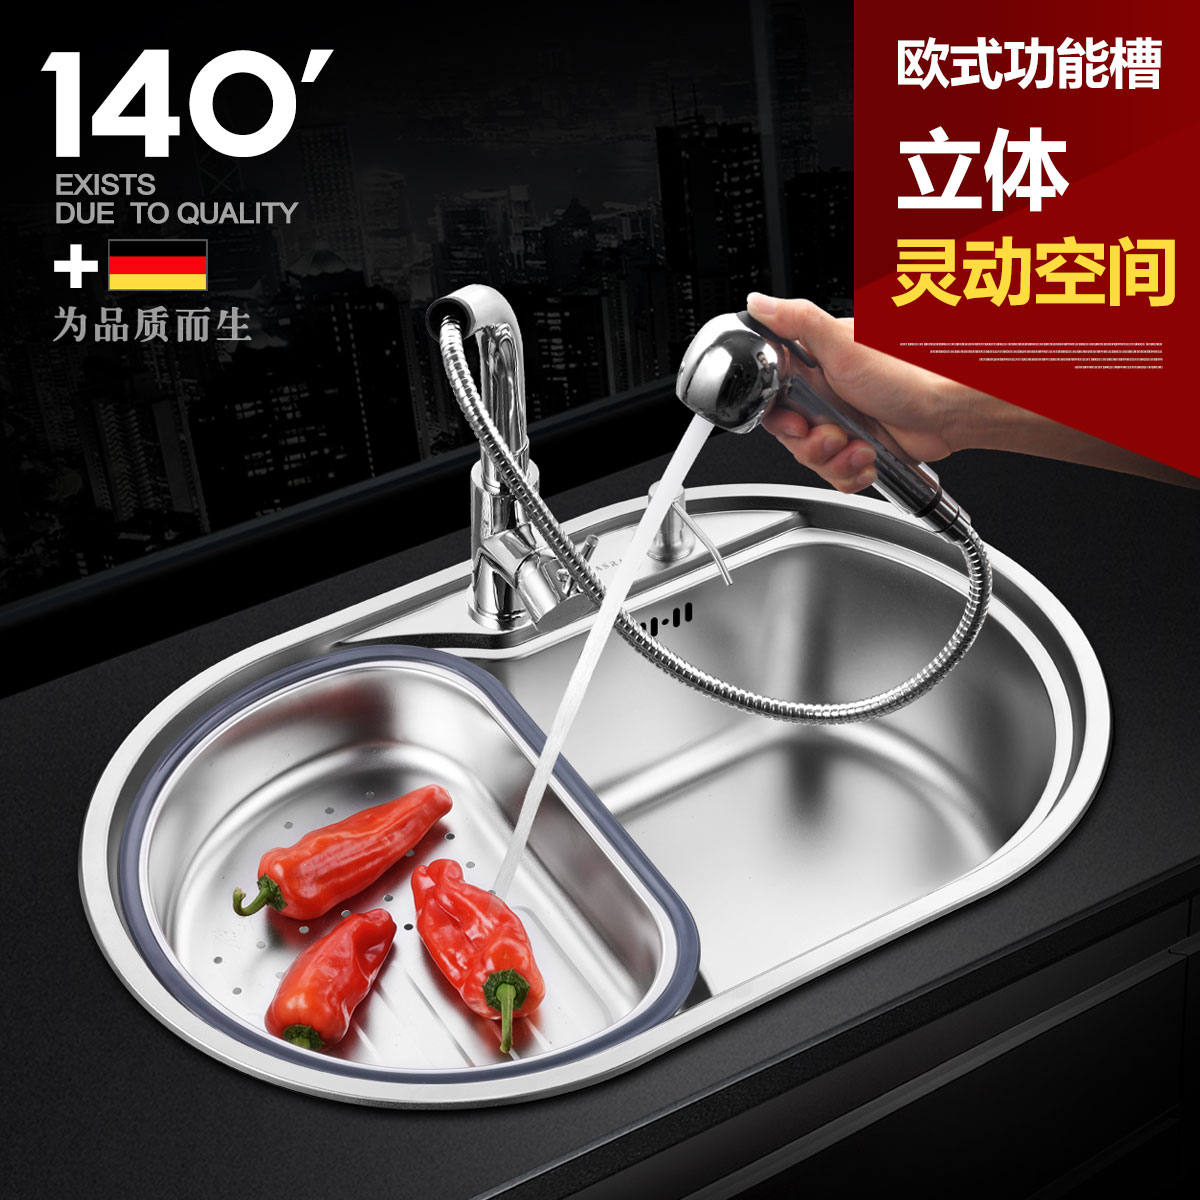 Assas multifunction round thick 304 stainless steel sink package vegetables basin kitchen sink single vegetables basin